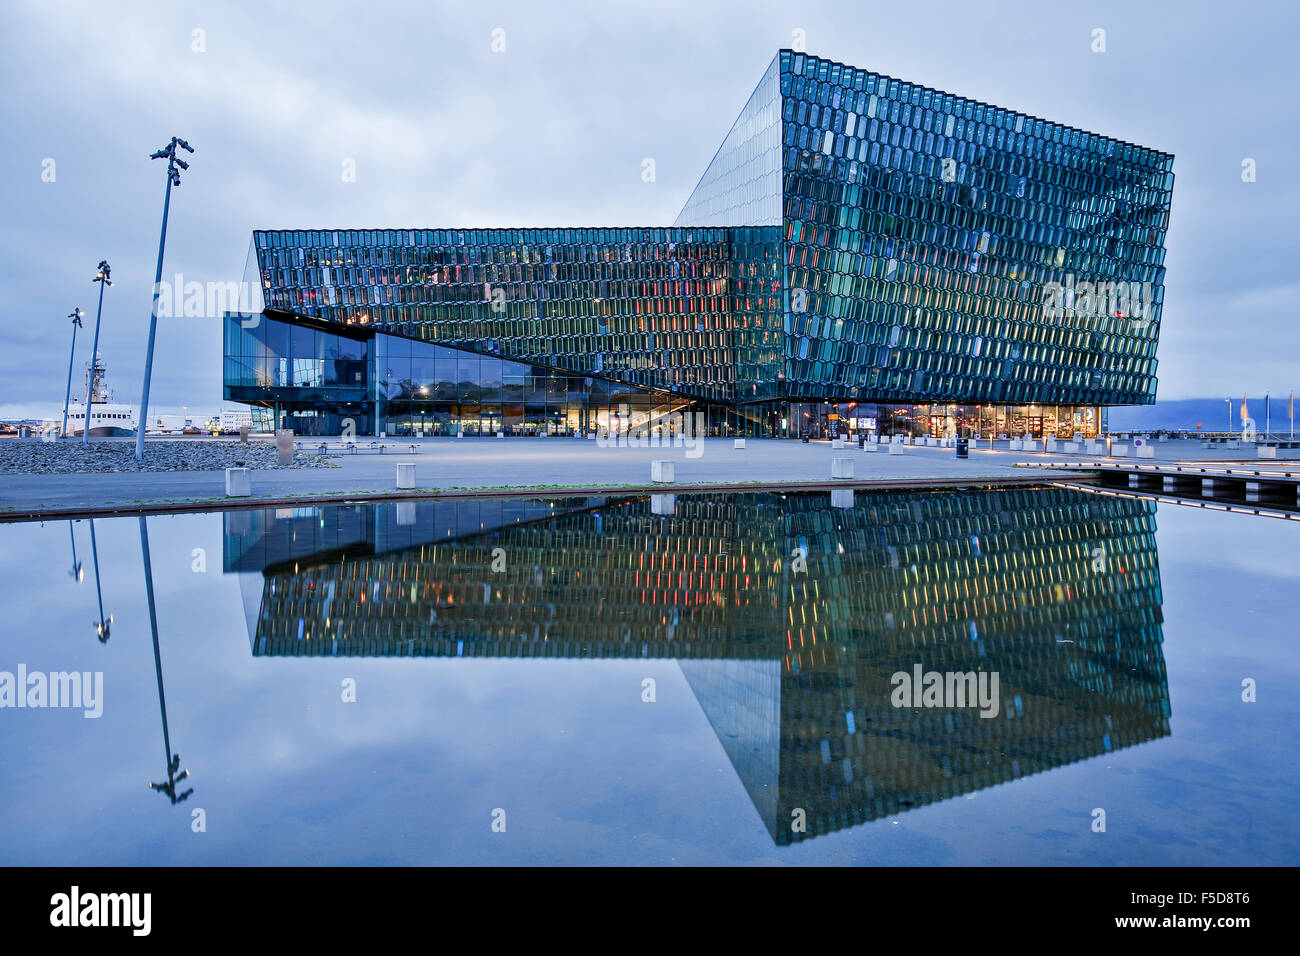 Harpa Concert Hall and Conference Center, Reykjavik, Iceland - Stock Image